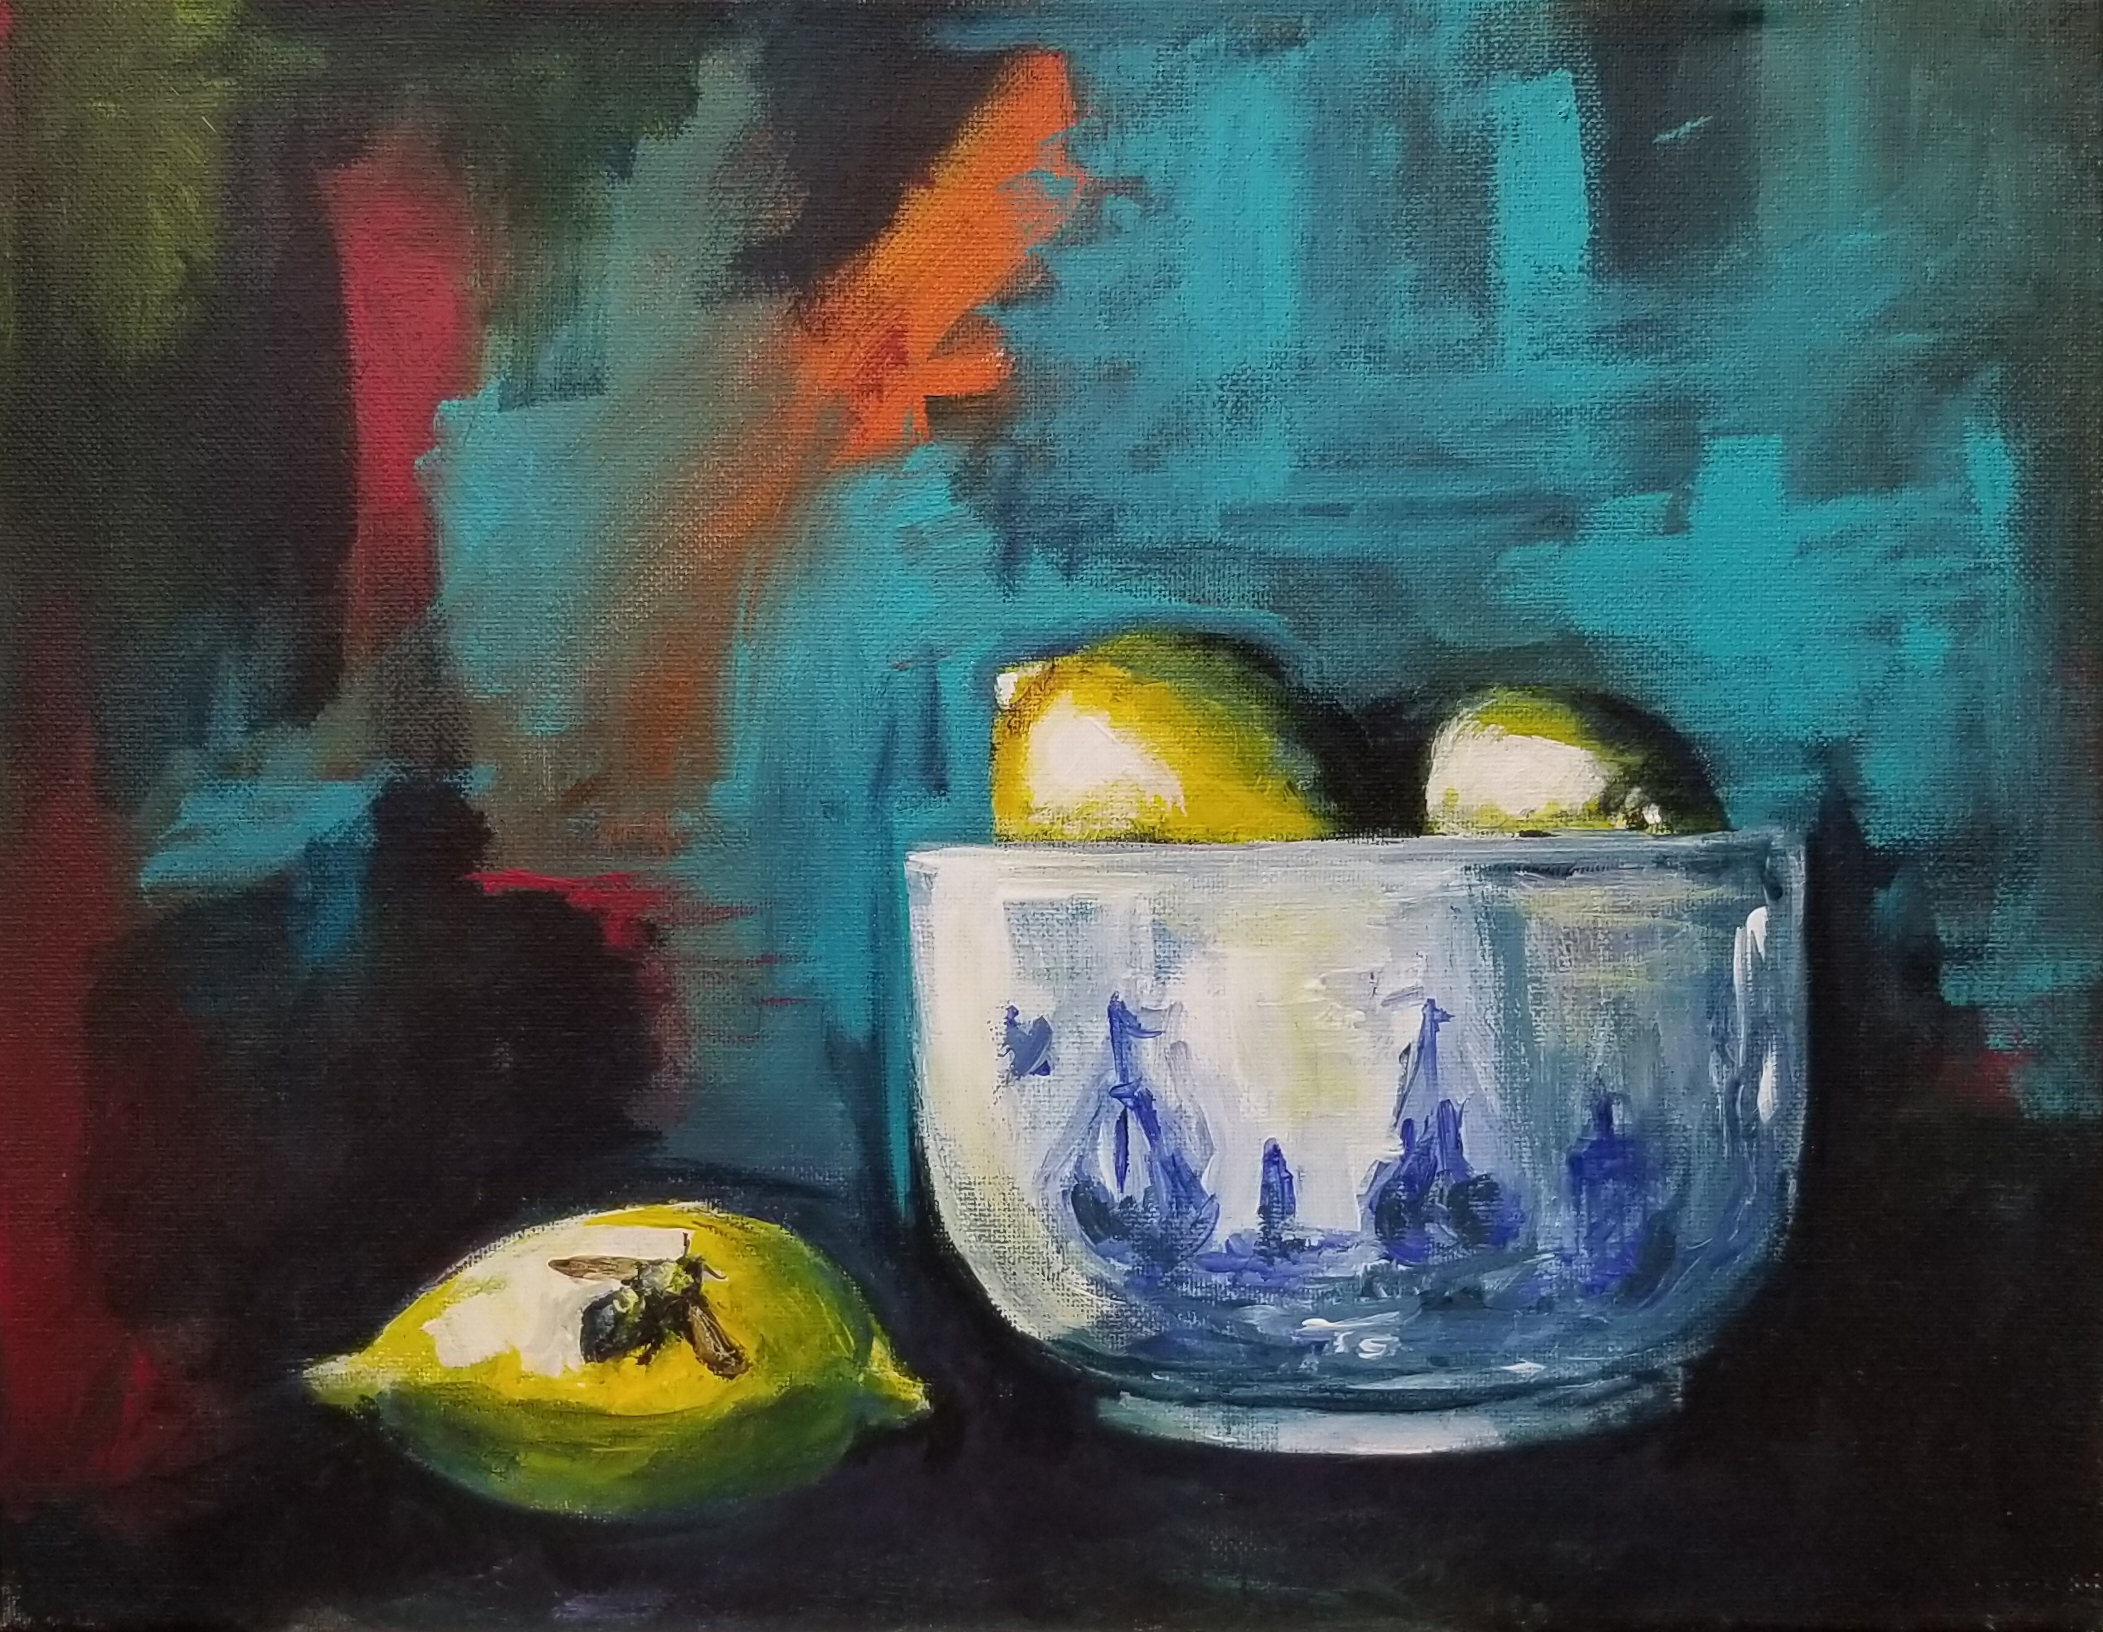 Stilllife with lemons in a small blue and white delft bowl. A small bee sits atop a lemon on the table top.